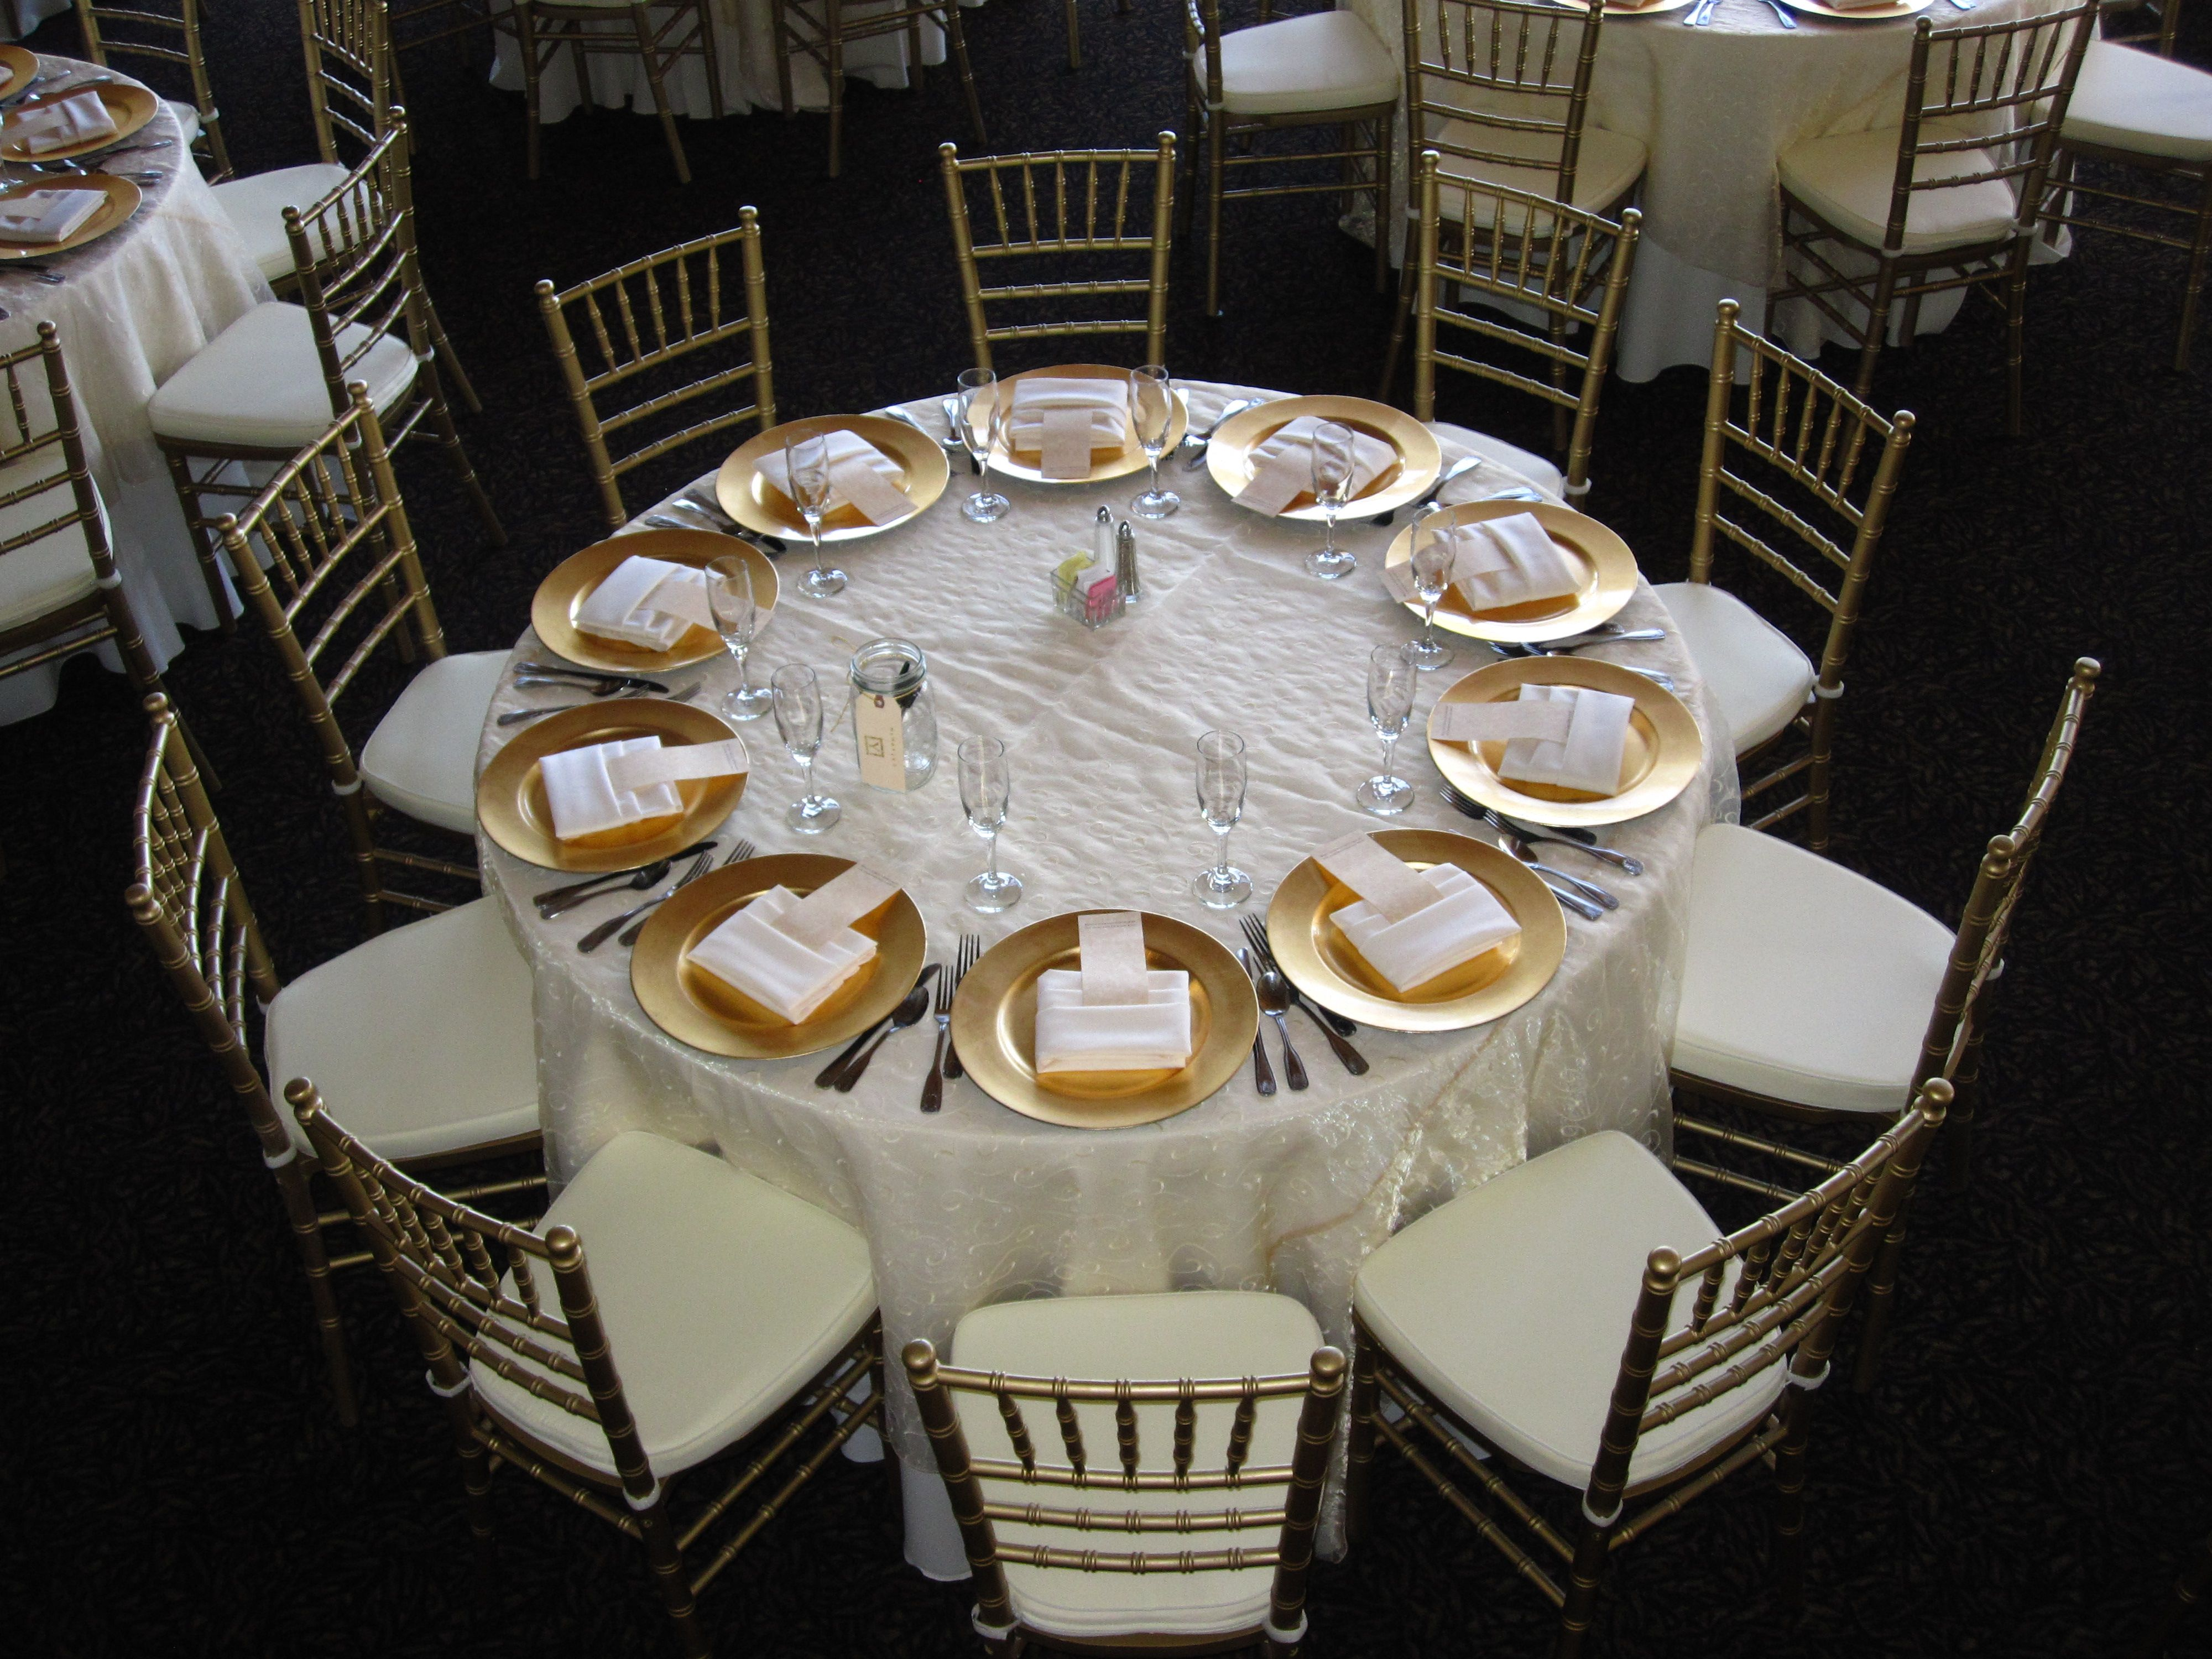 50th Anniversary Party Ideas On A Budget